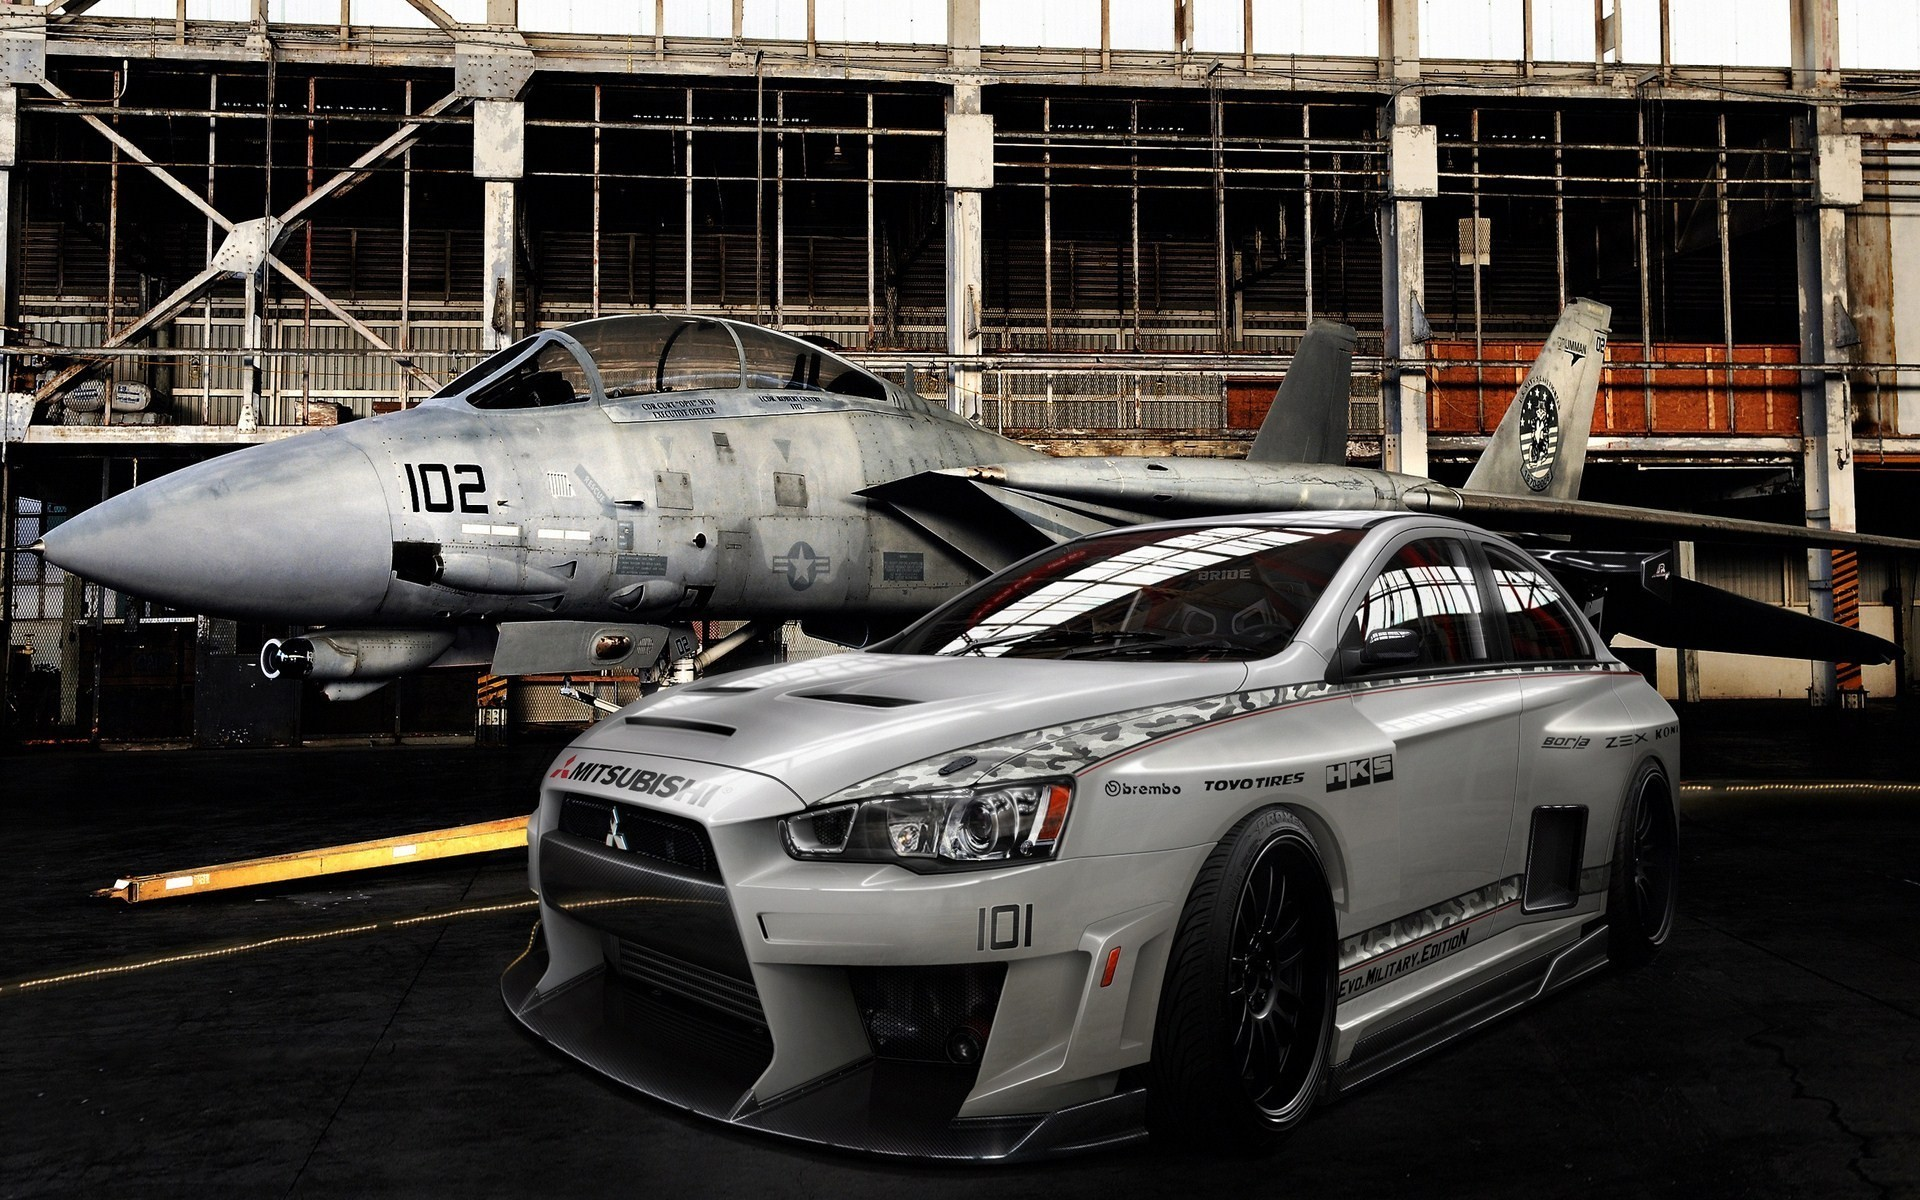 Aircraft military vehicles mitsubishi HD Wallpaper